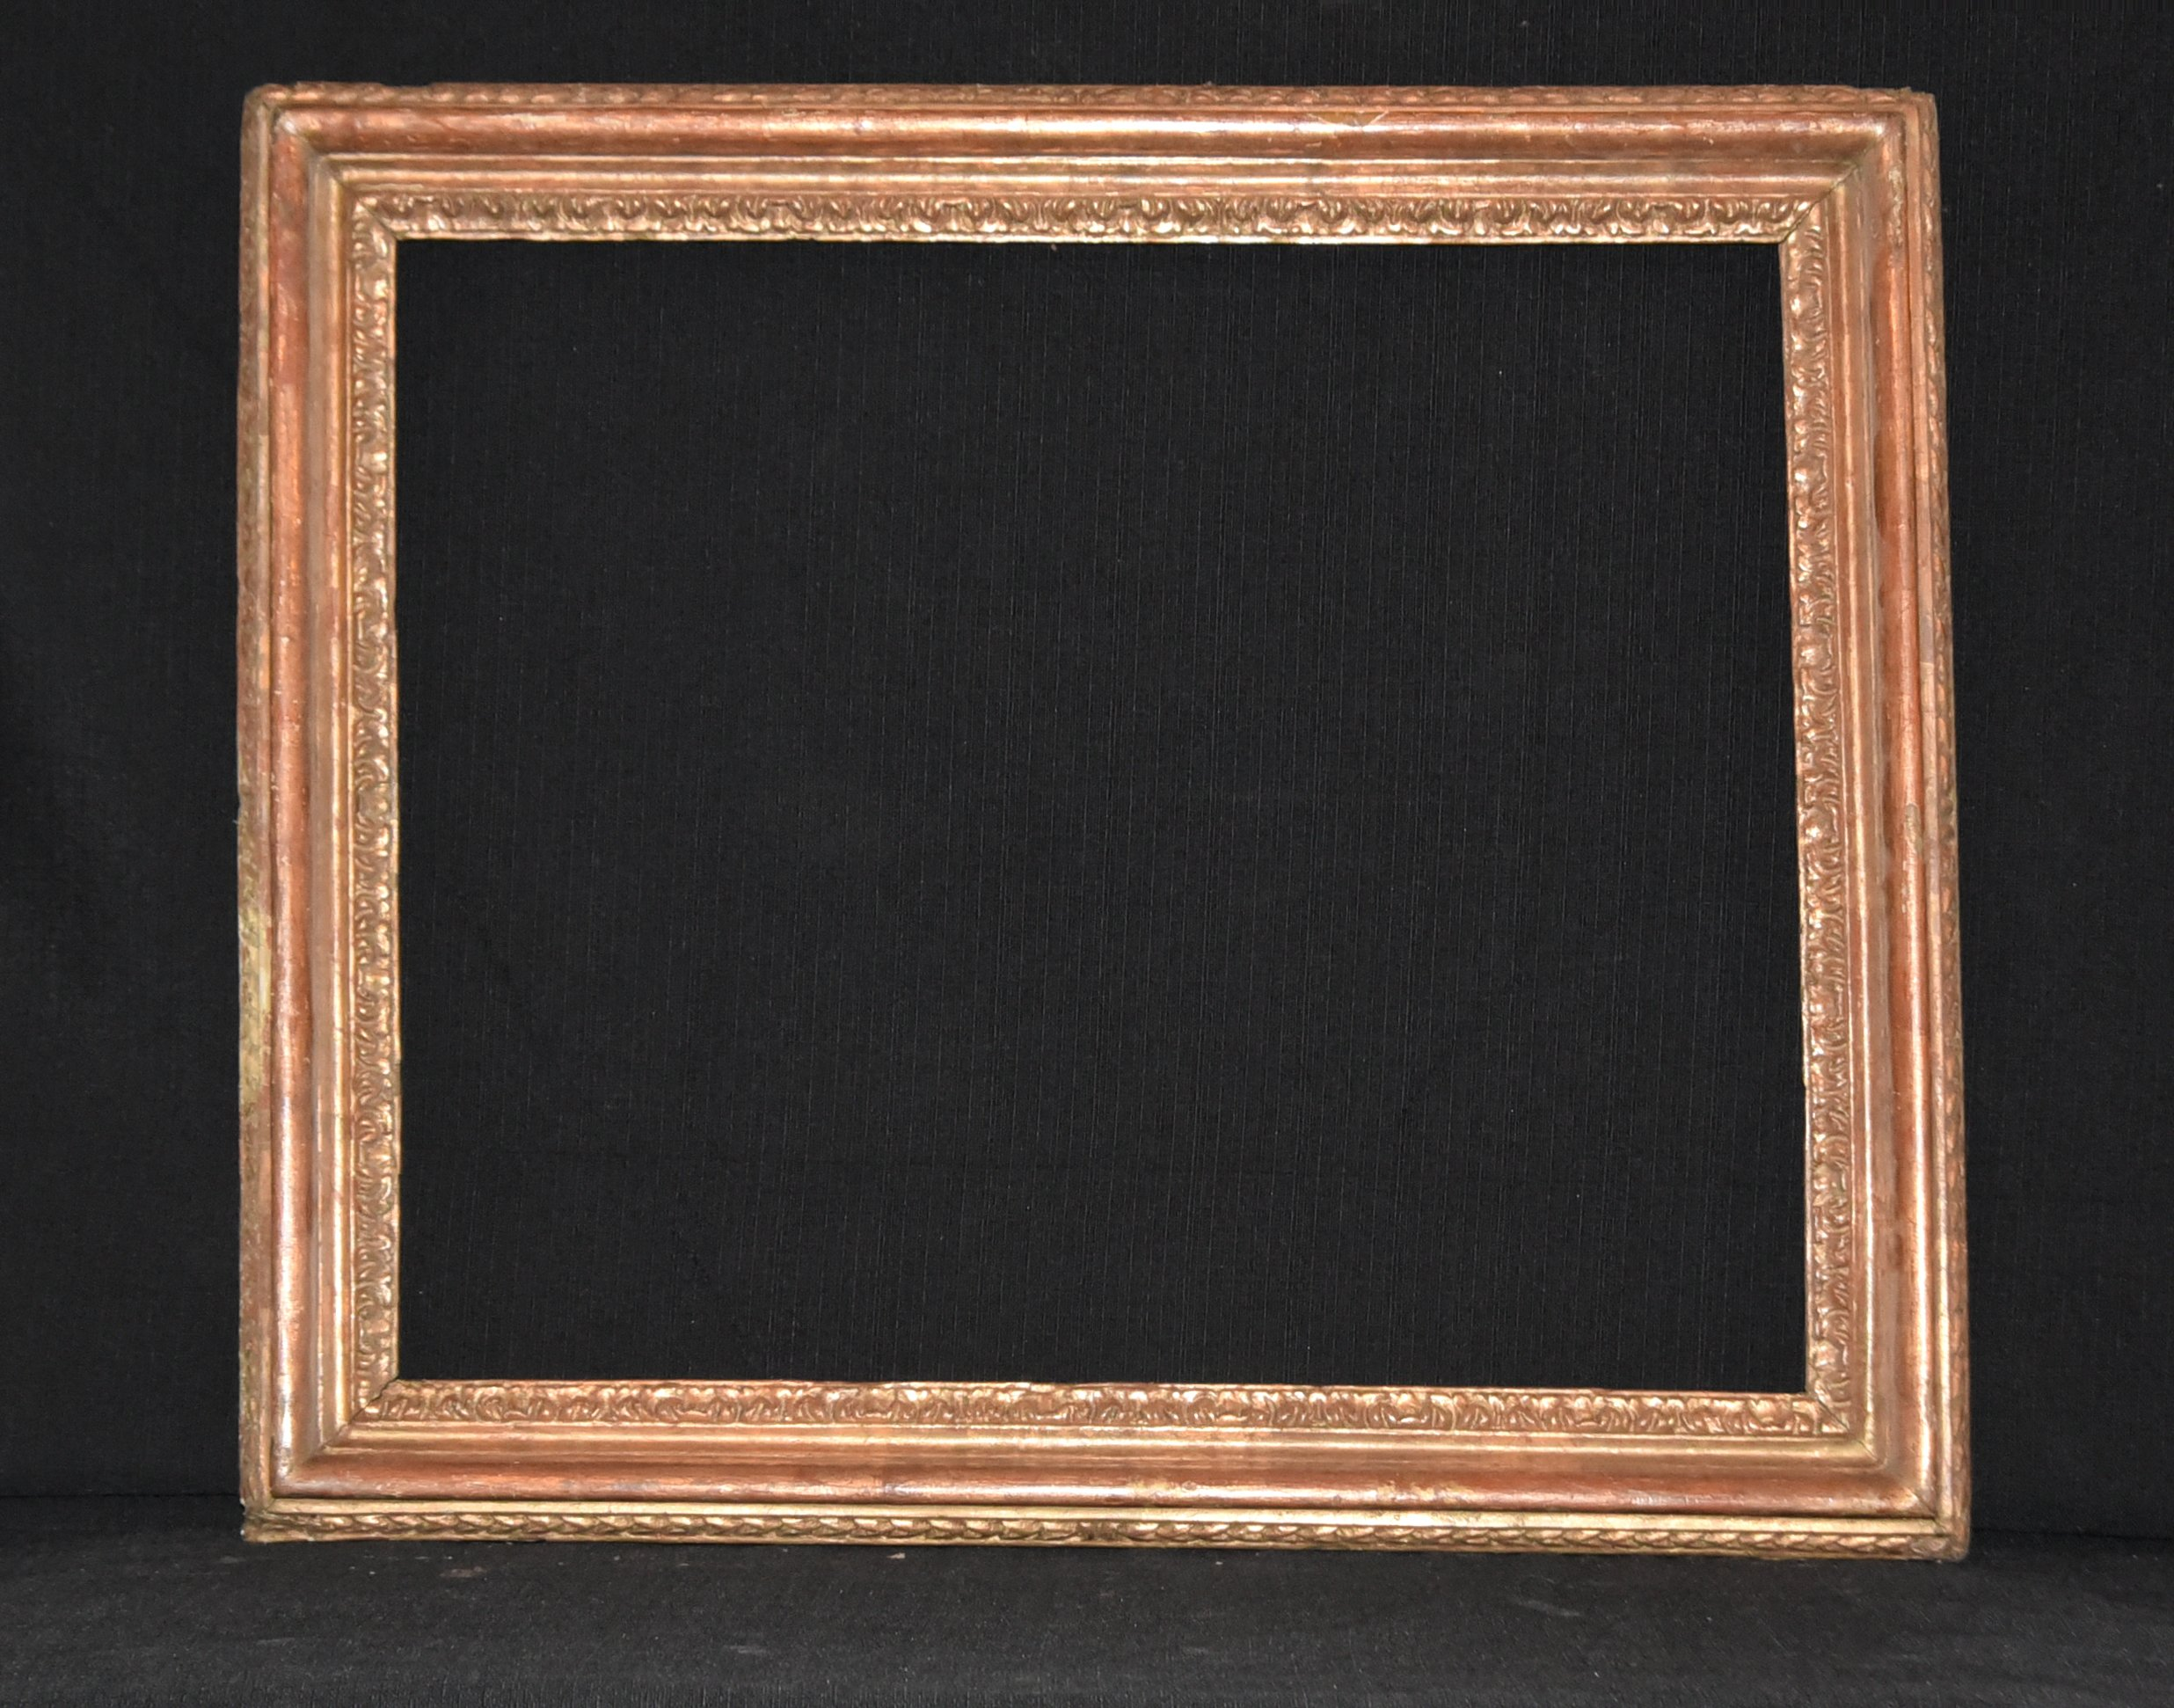 Piedmontese baroque frame - Contact for price